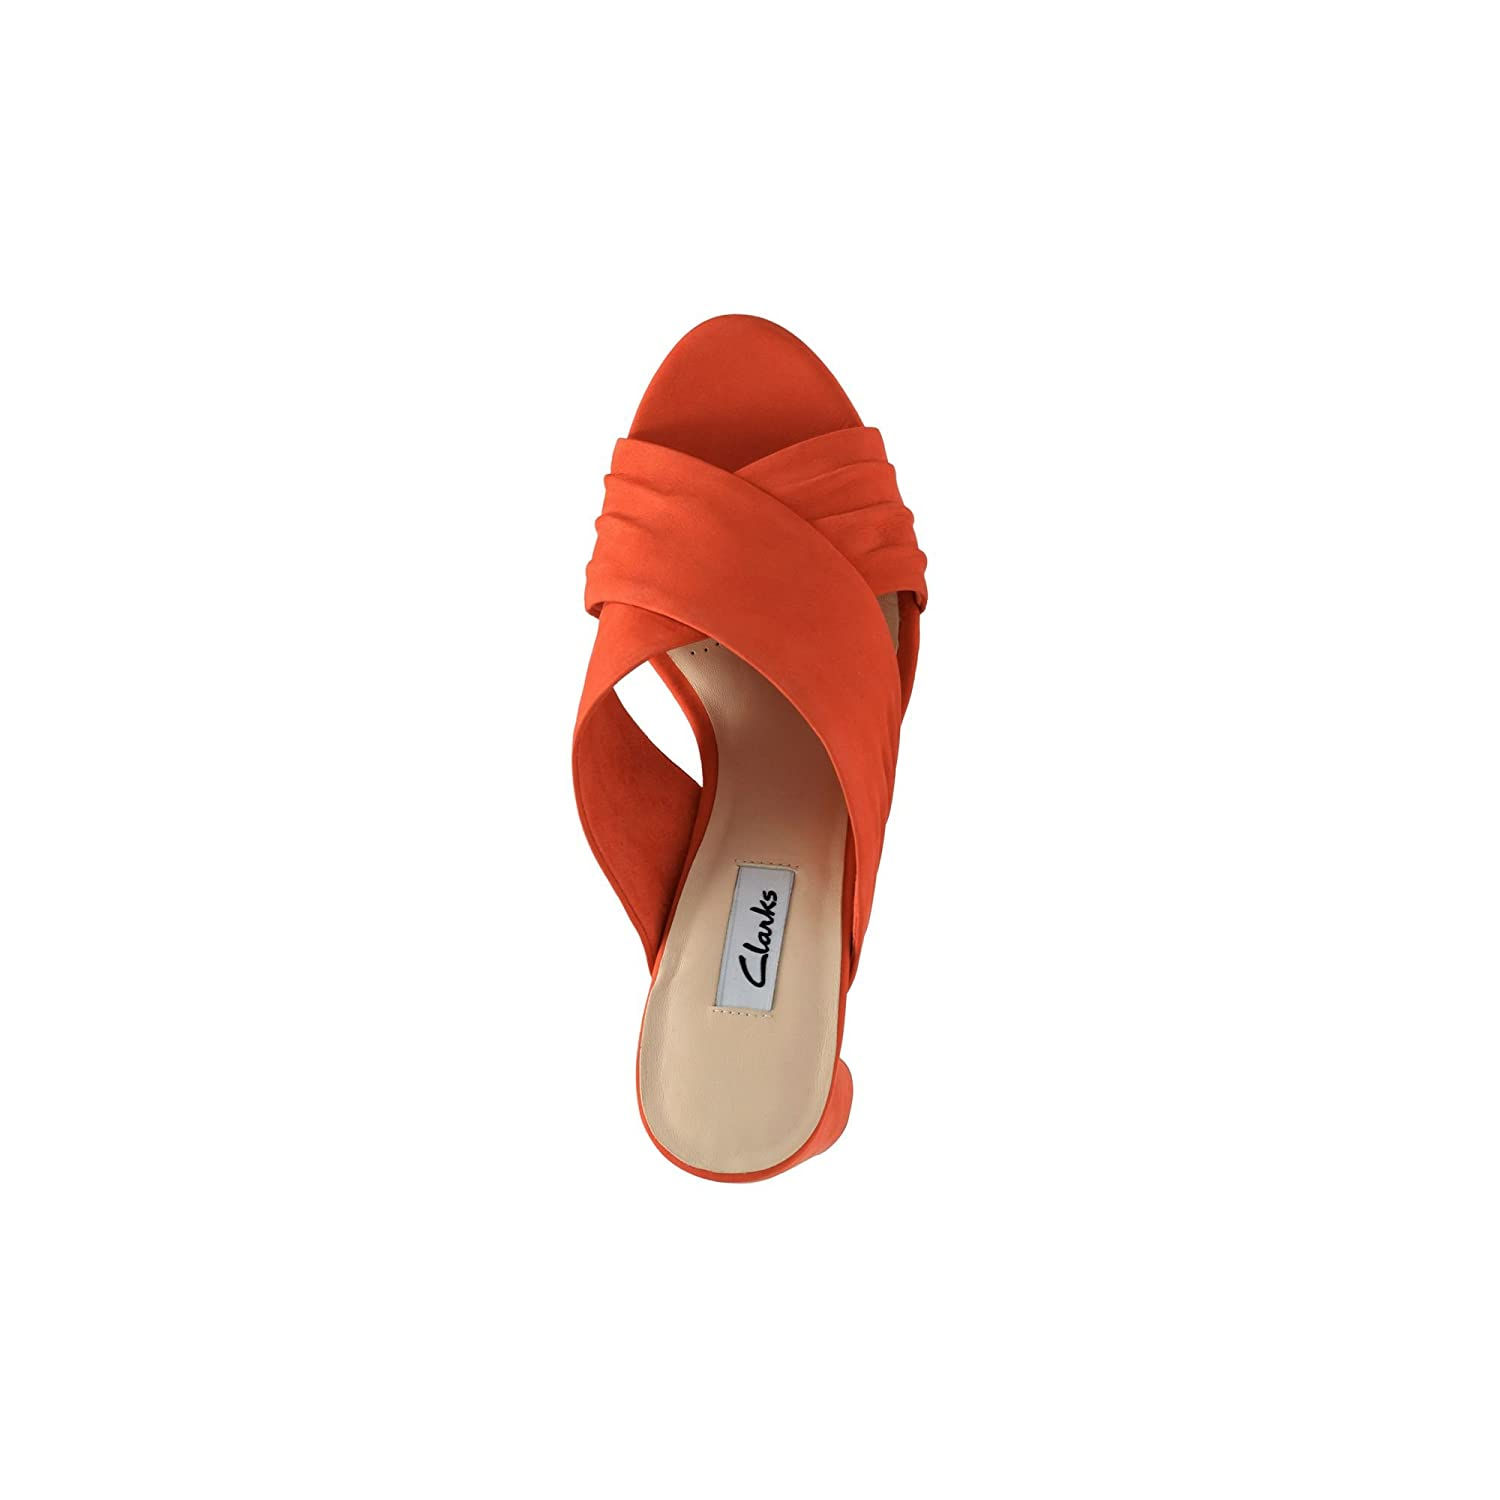 b629b3a4c7c Clarks Women s Amali Primrose Fashion Sandals  Buy Online at Low Prices in  India - Amazon.in